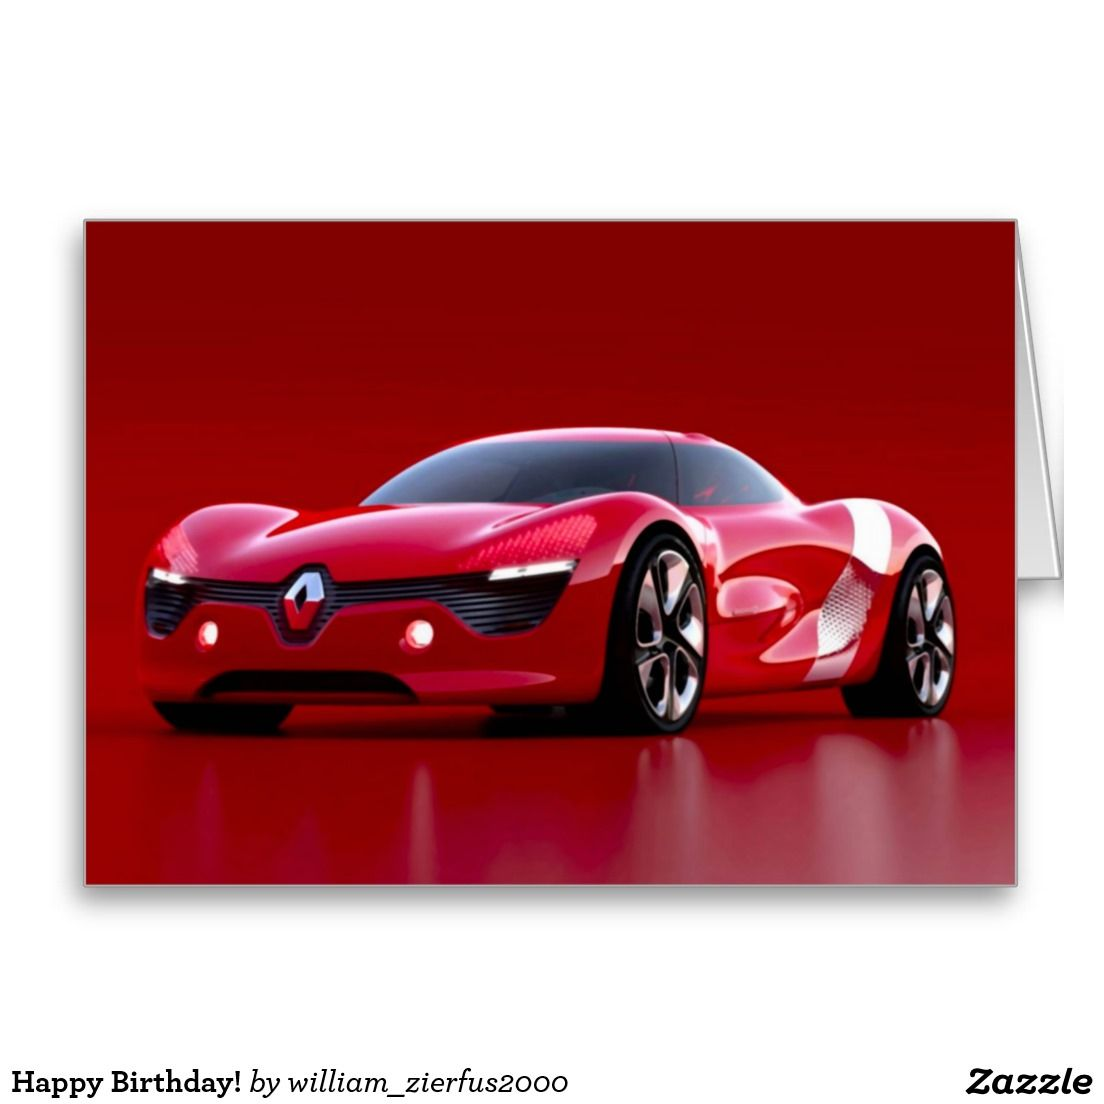 Happy Birthday! Card | Zazzle.com